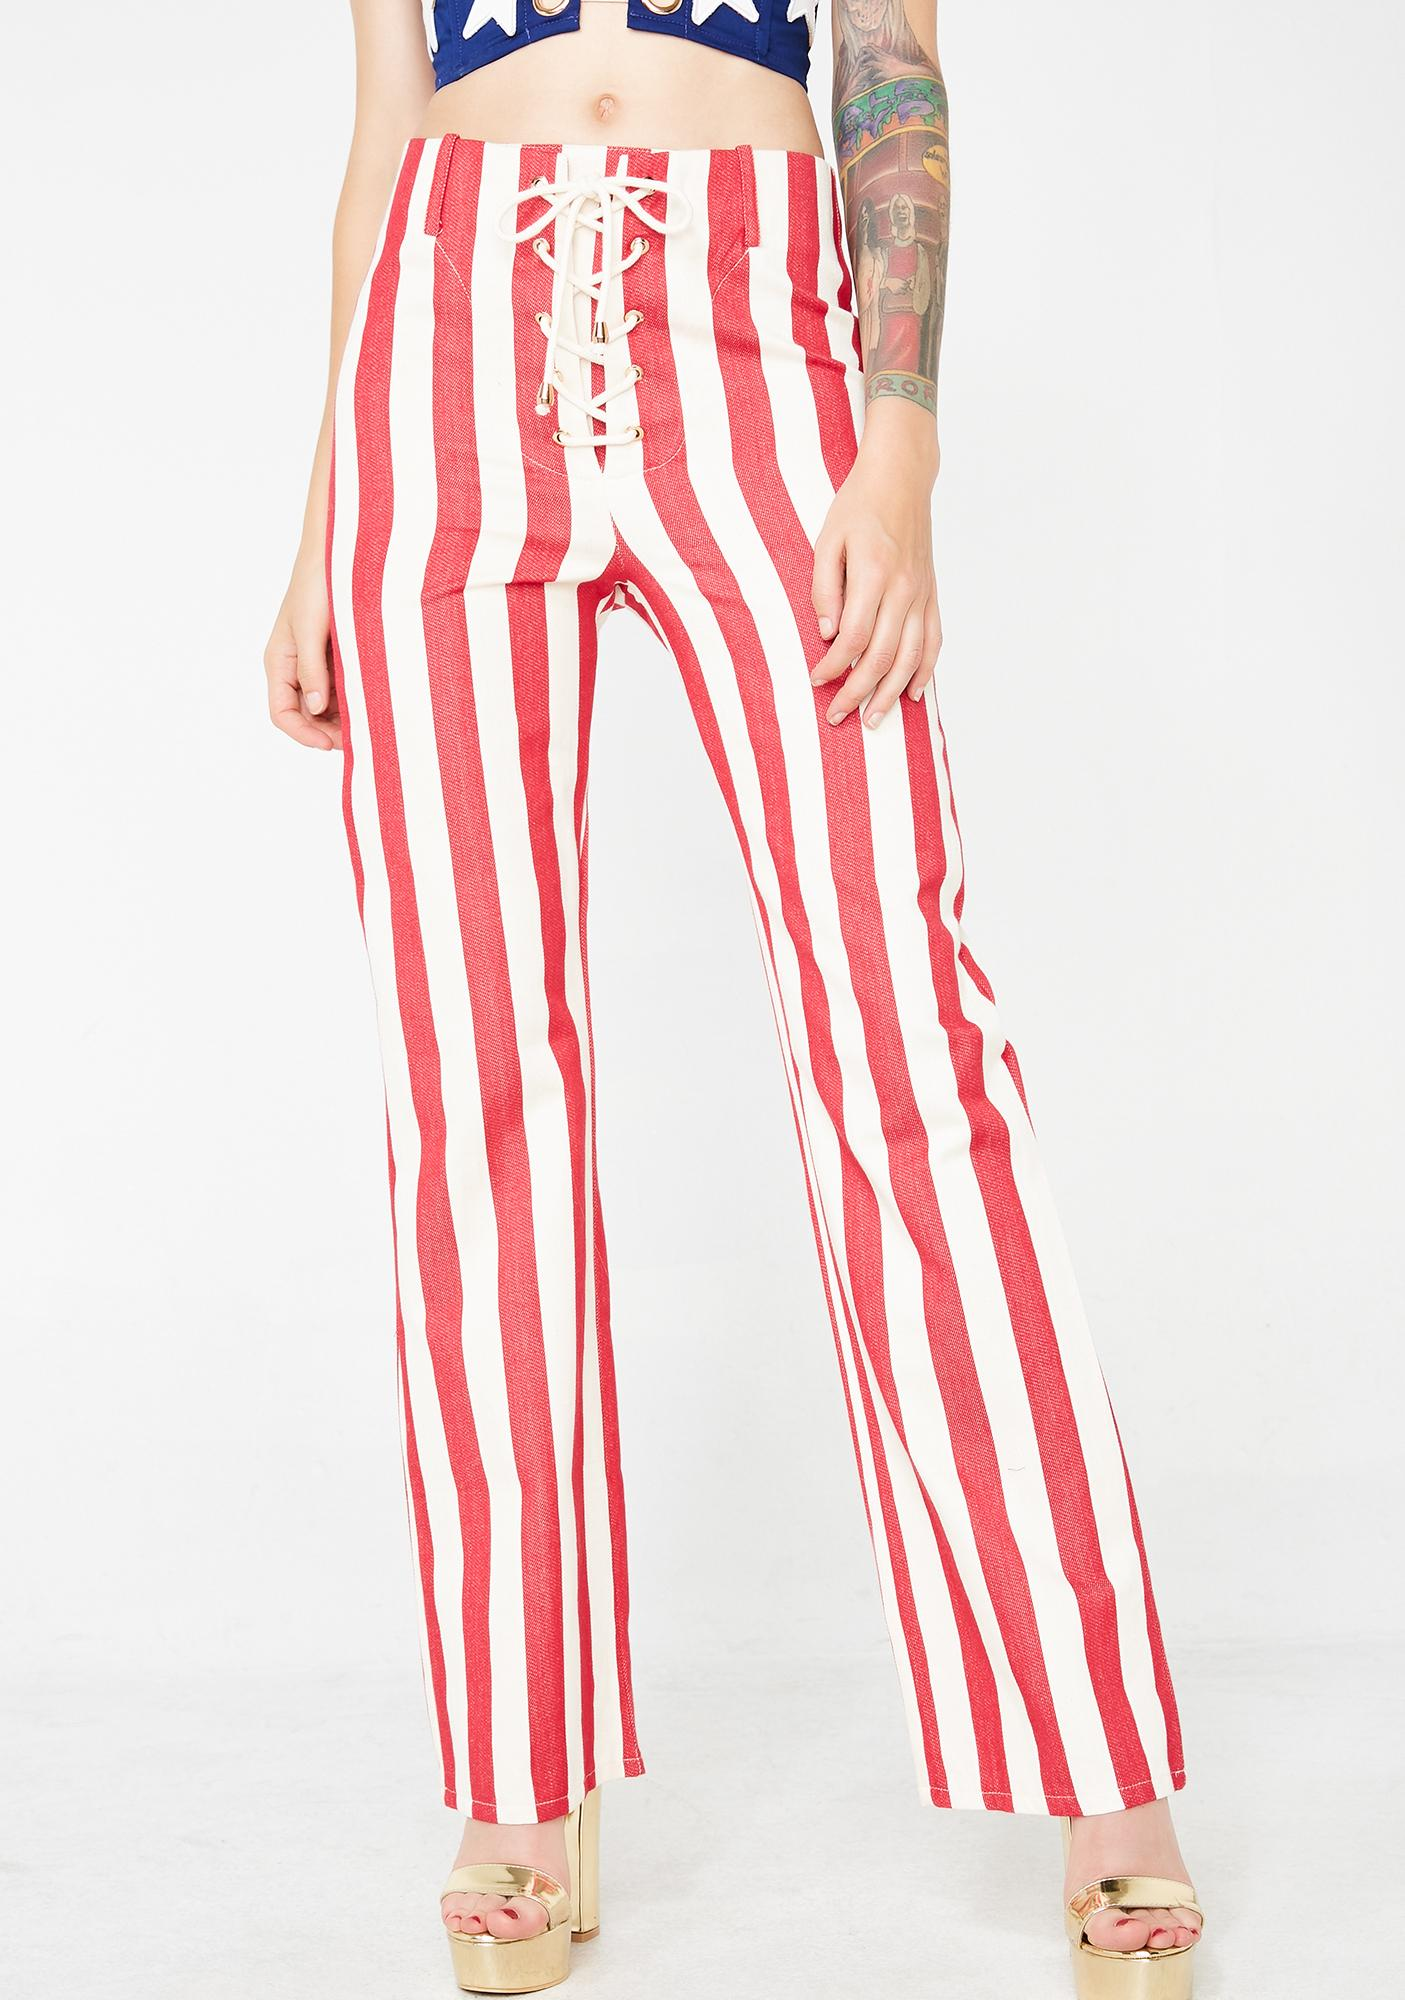 Jagger & Stone The Thelma Striped Pants